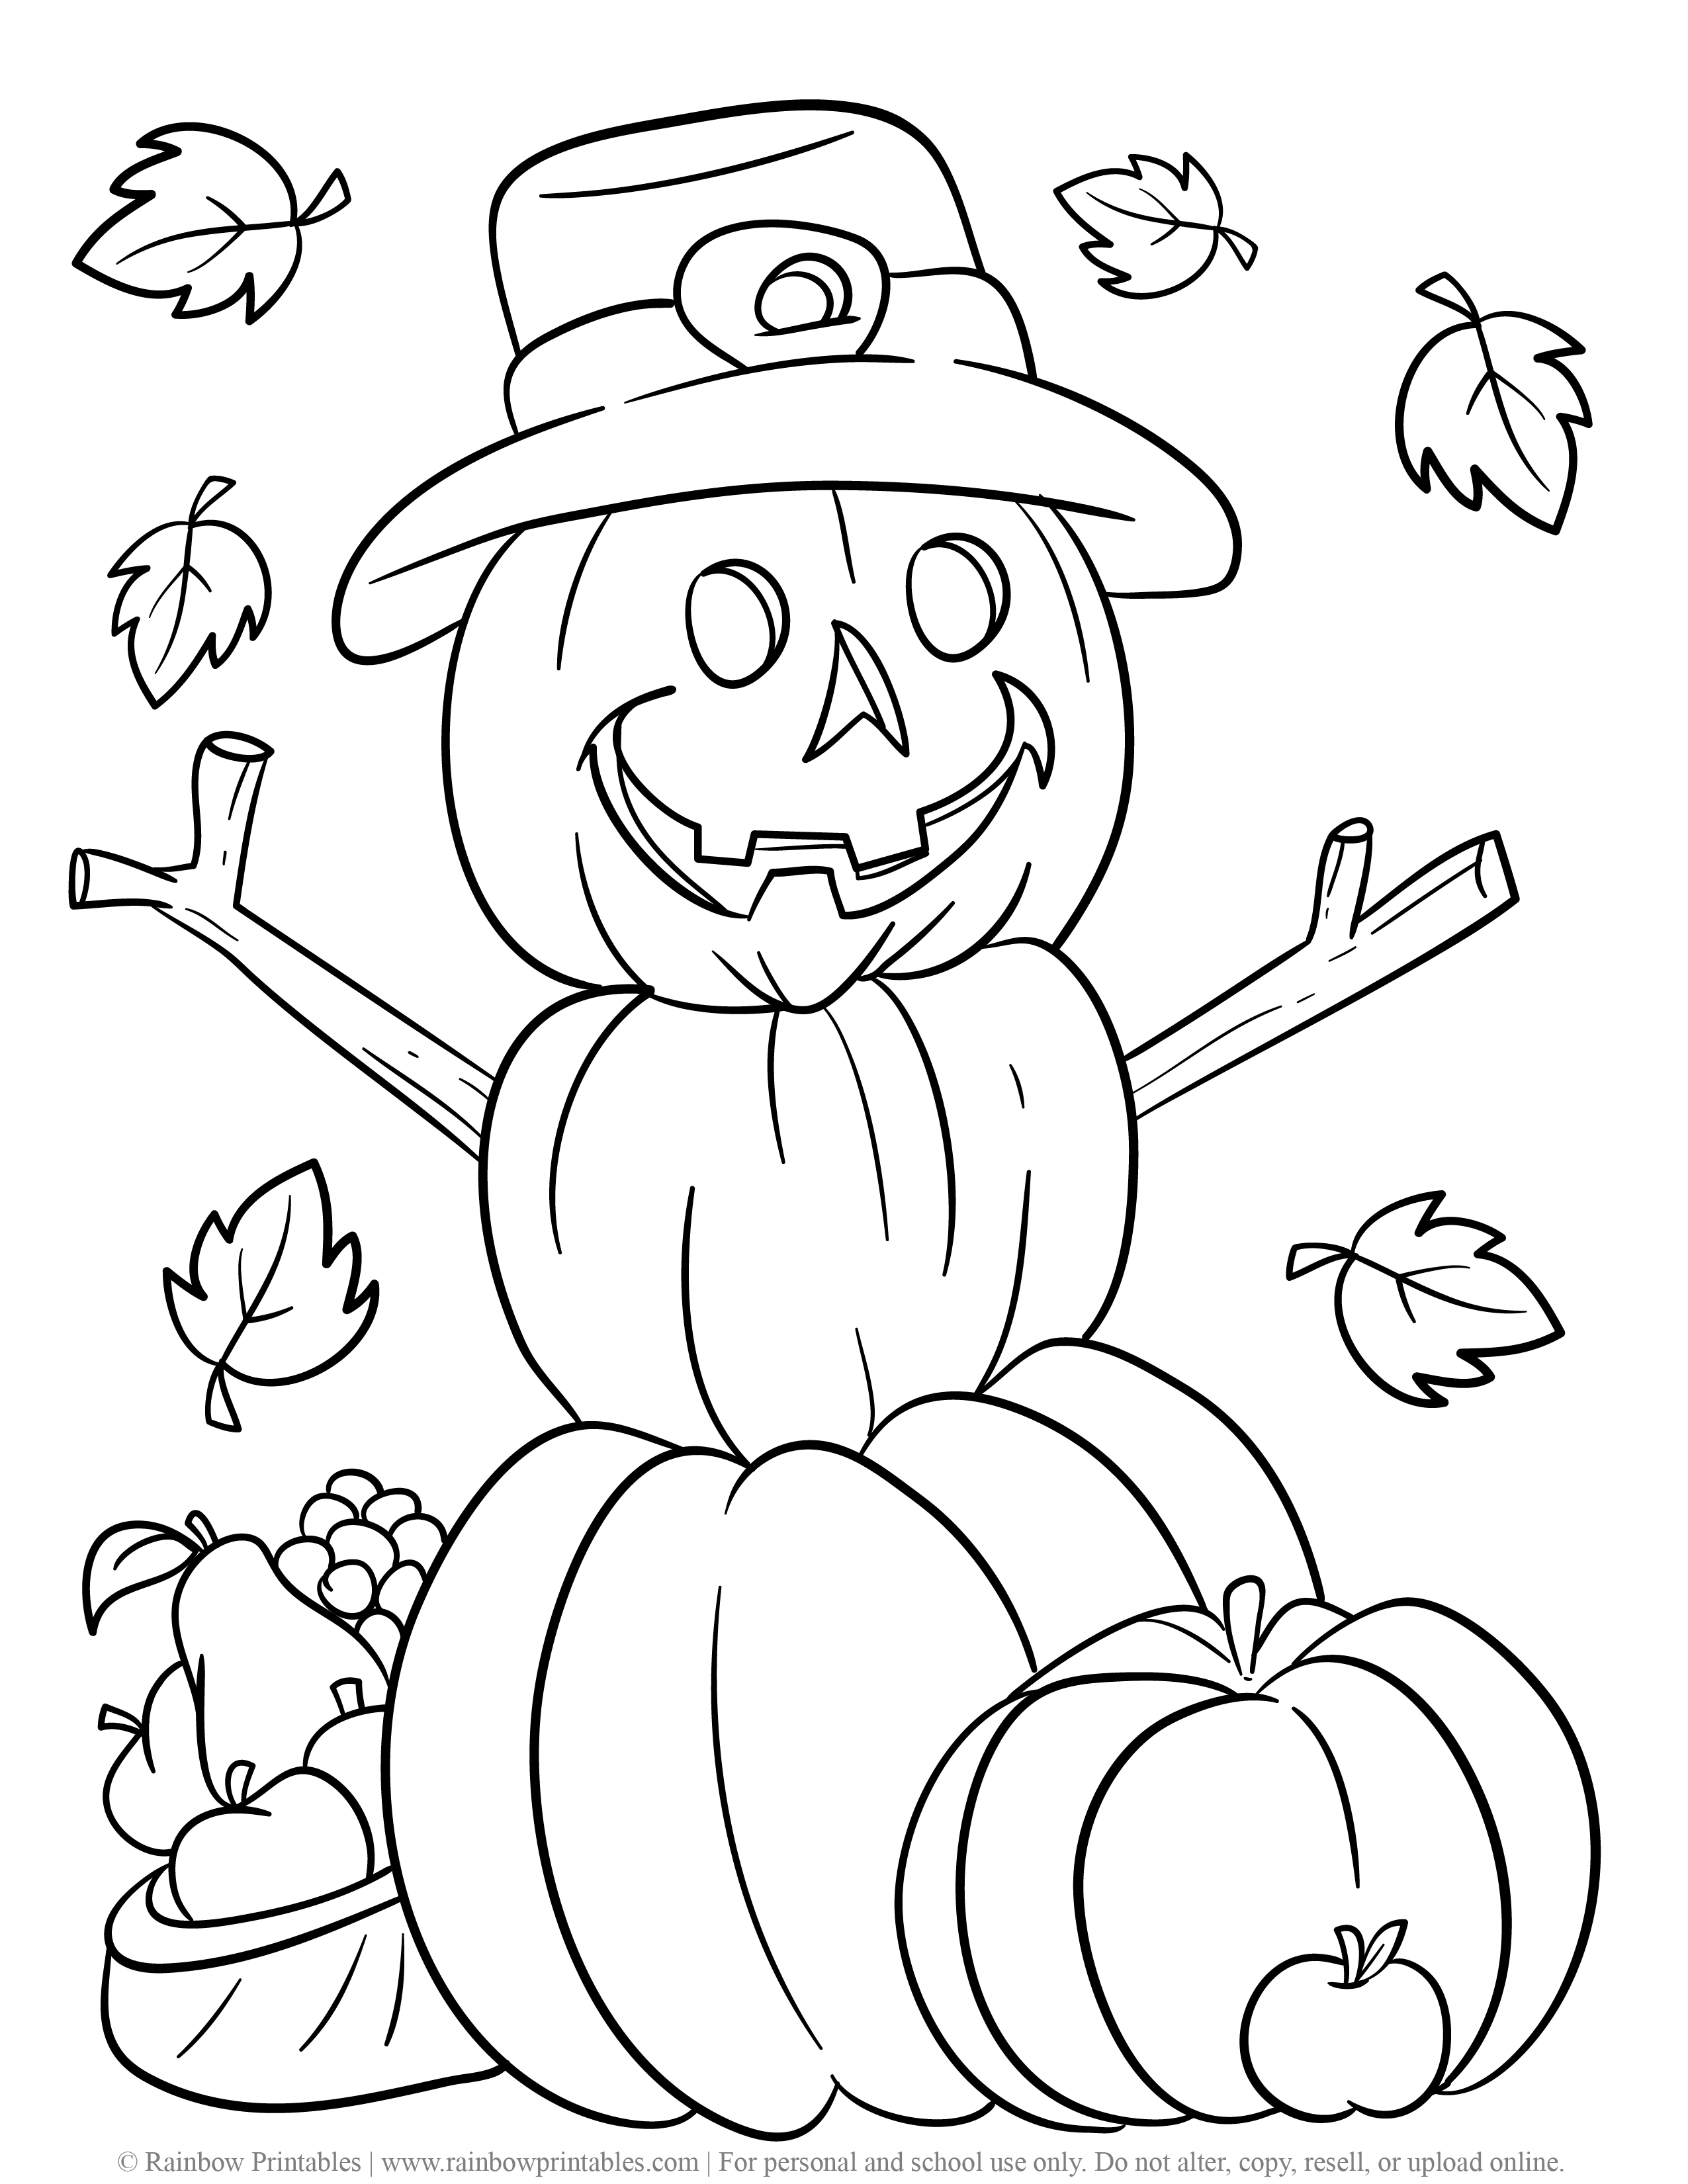 Fall Theme Season Pumpkin Snowman Coloring Pages for Kids Cute Beautiful Harvest Falling Leaves